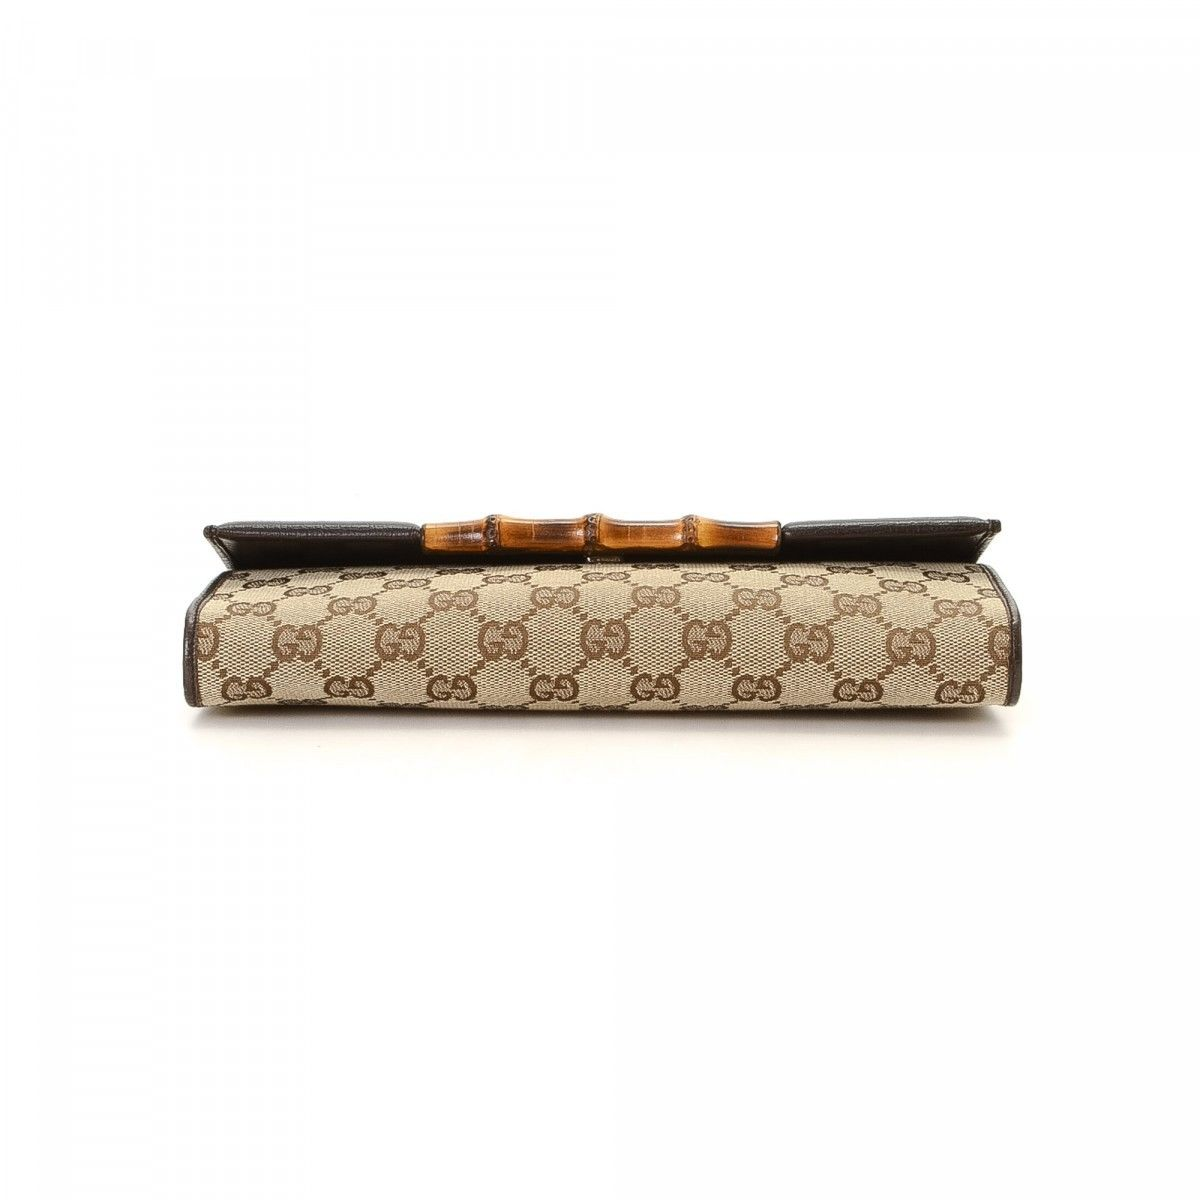 833eac83c9e Bamboo Clutch With Strap. The authenticity of this vintage Gucci Bamboo  With Strap clutch is guaranteed by LXRandCo. This elegant evening bag in  beautiful ...